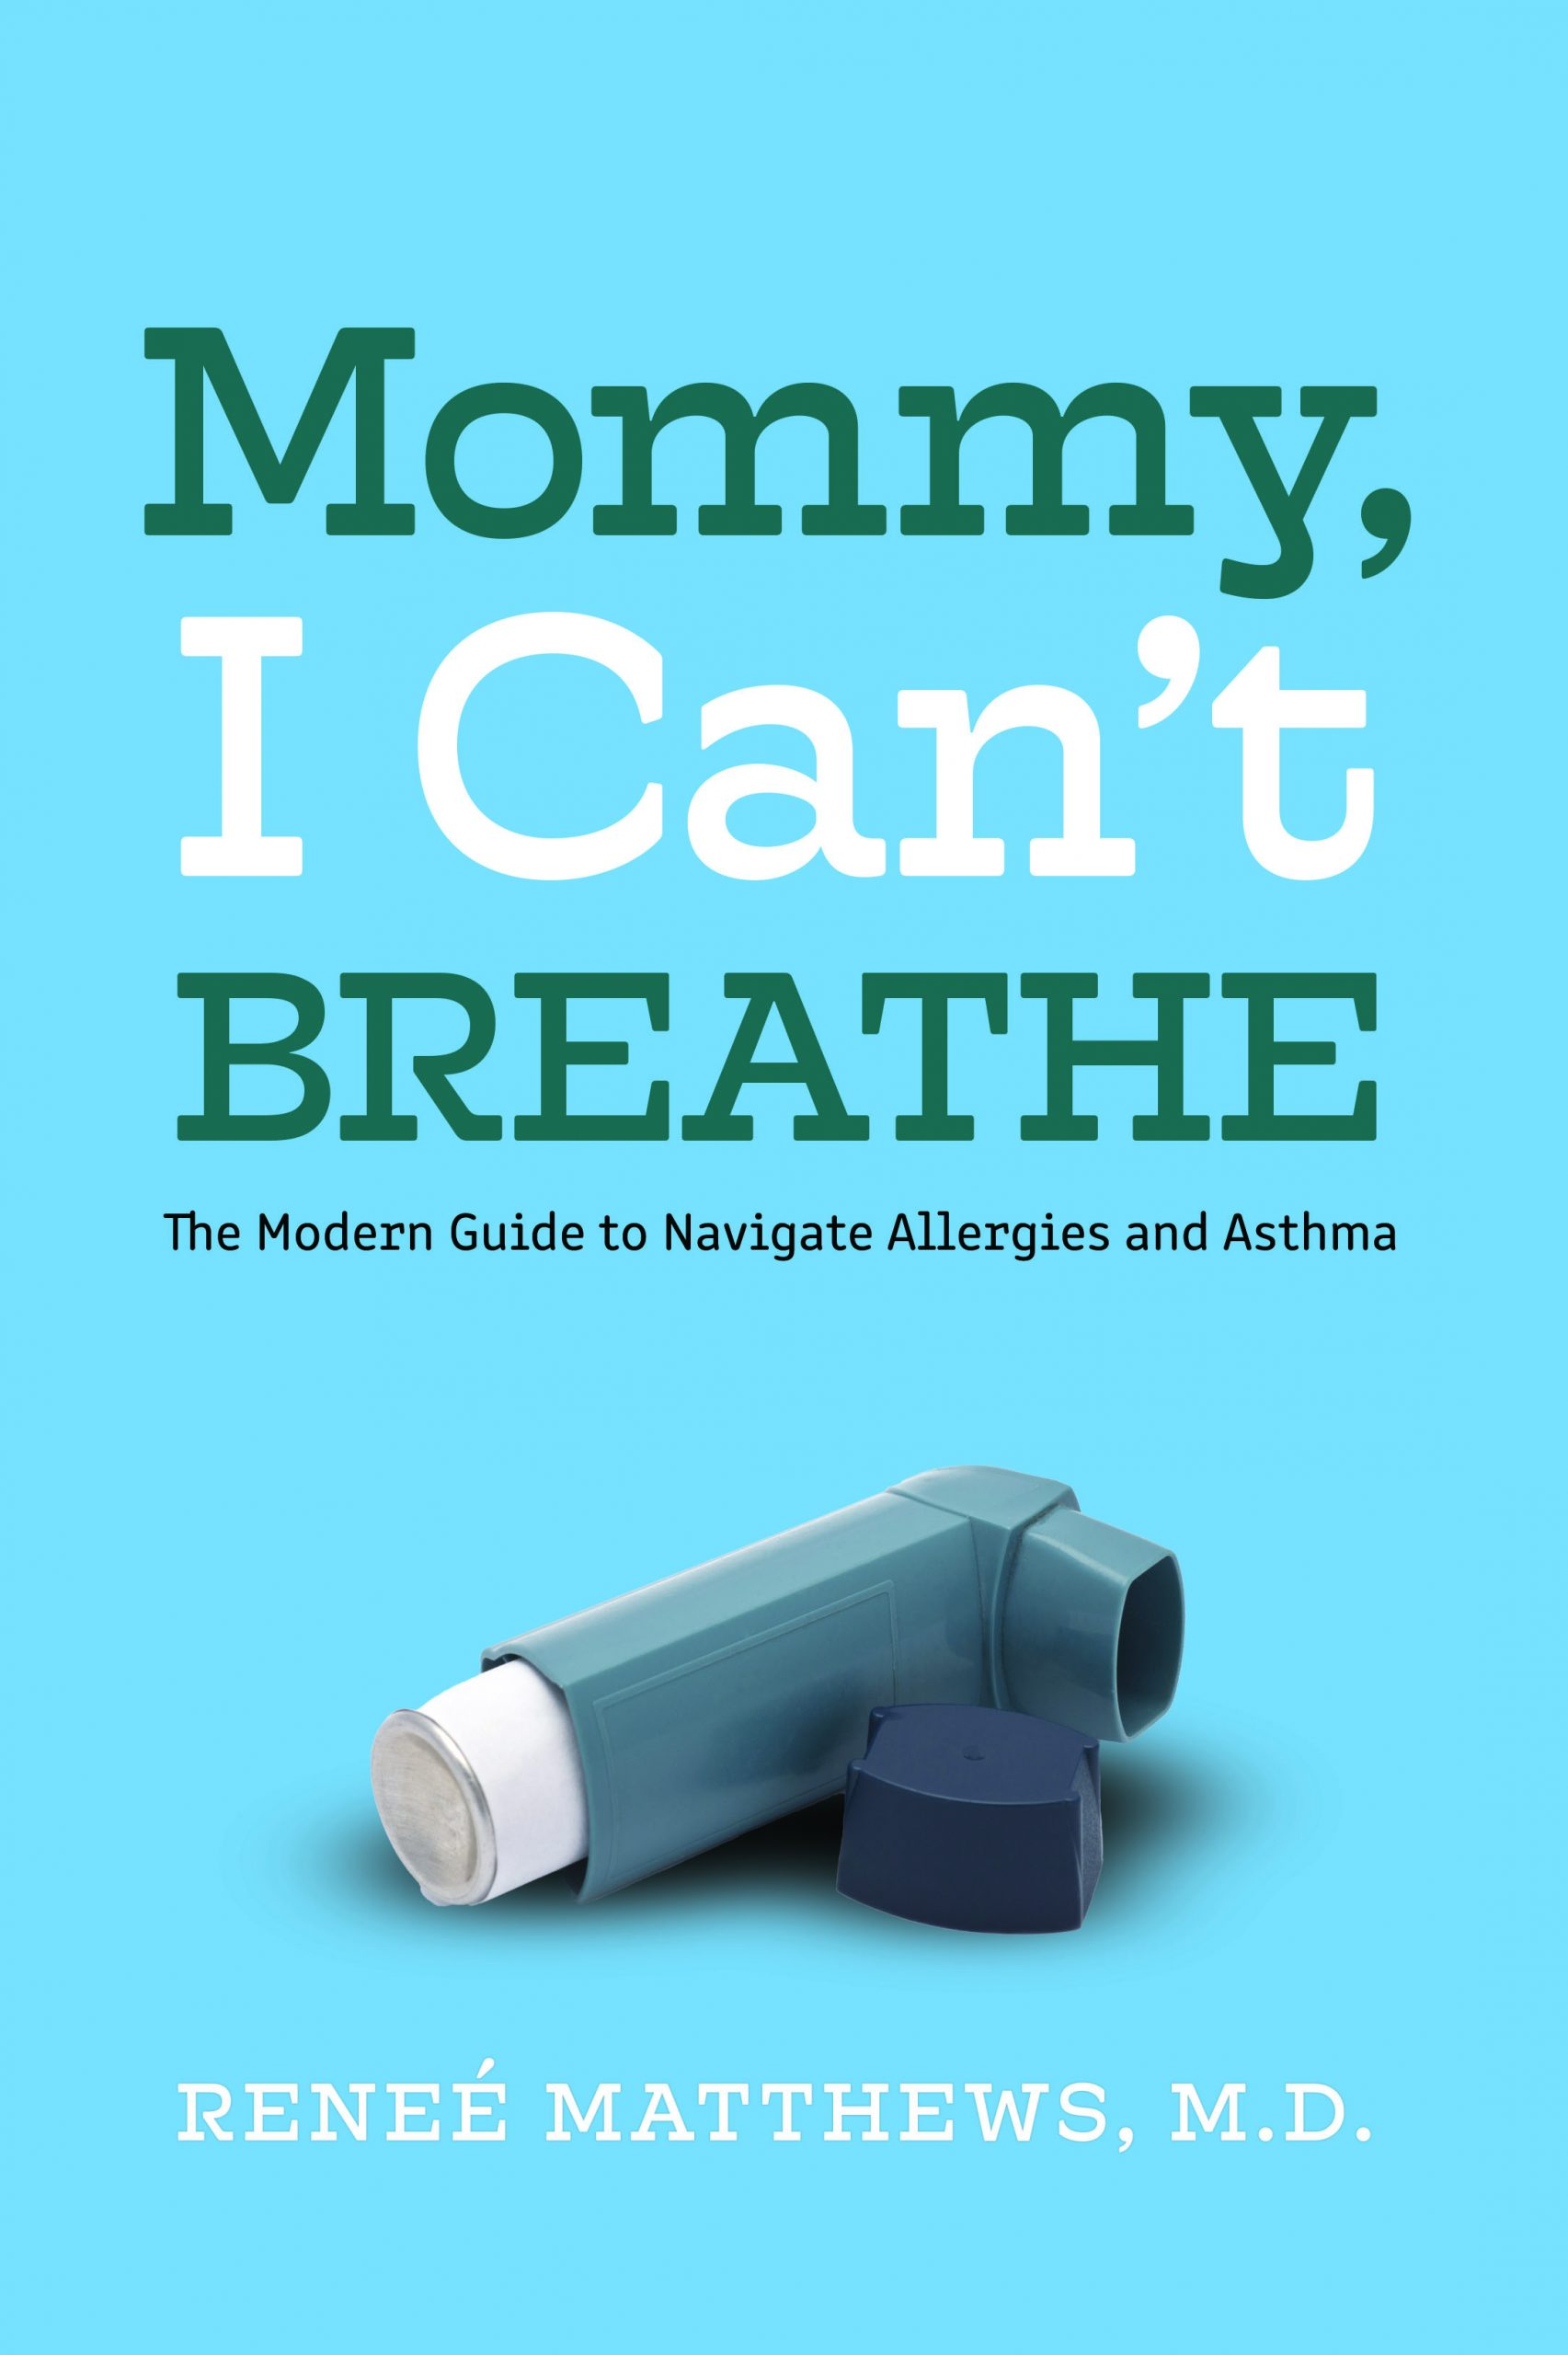 Asthma, Allergies, Breathe, Mommy I can't breathe, attacks, anaphylaxis, emergency room